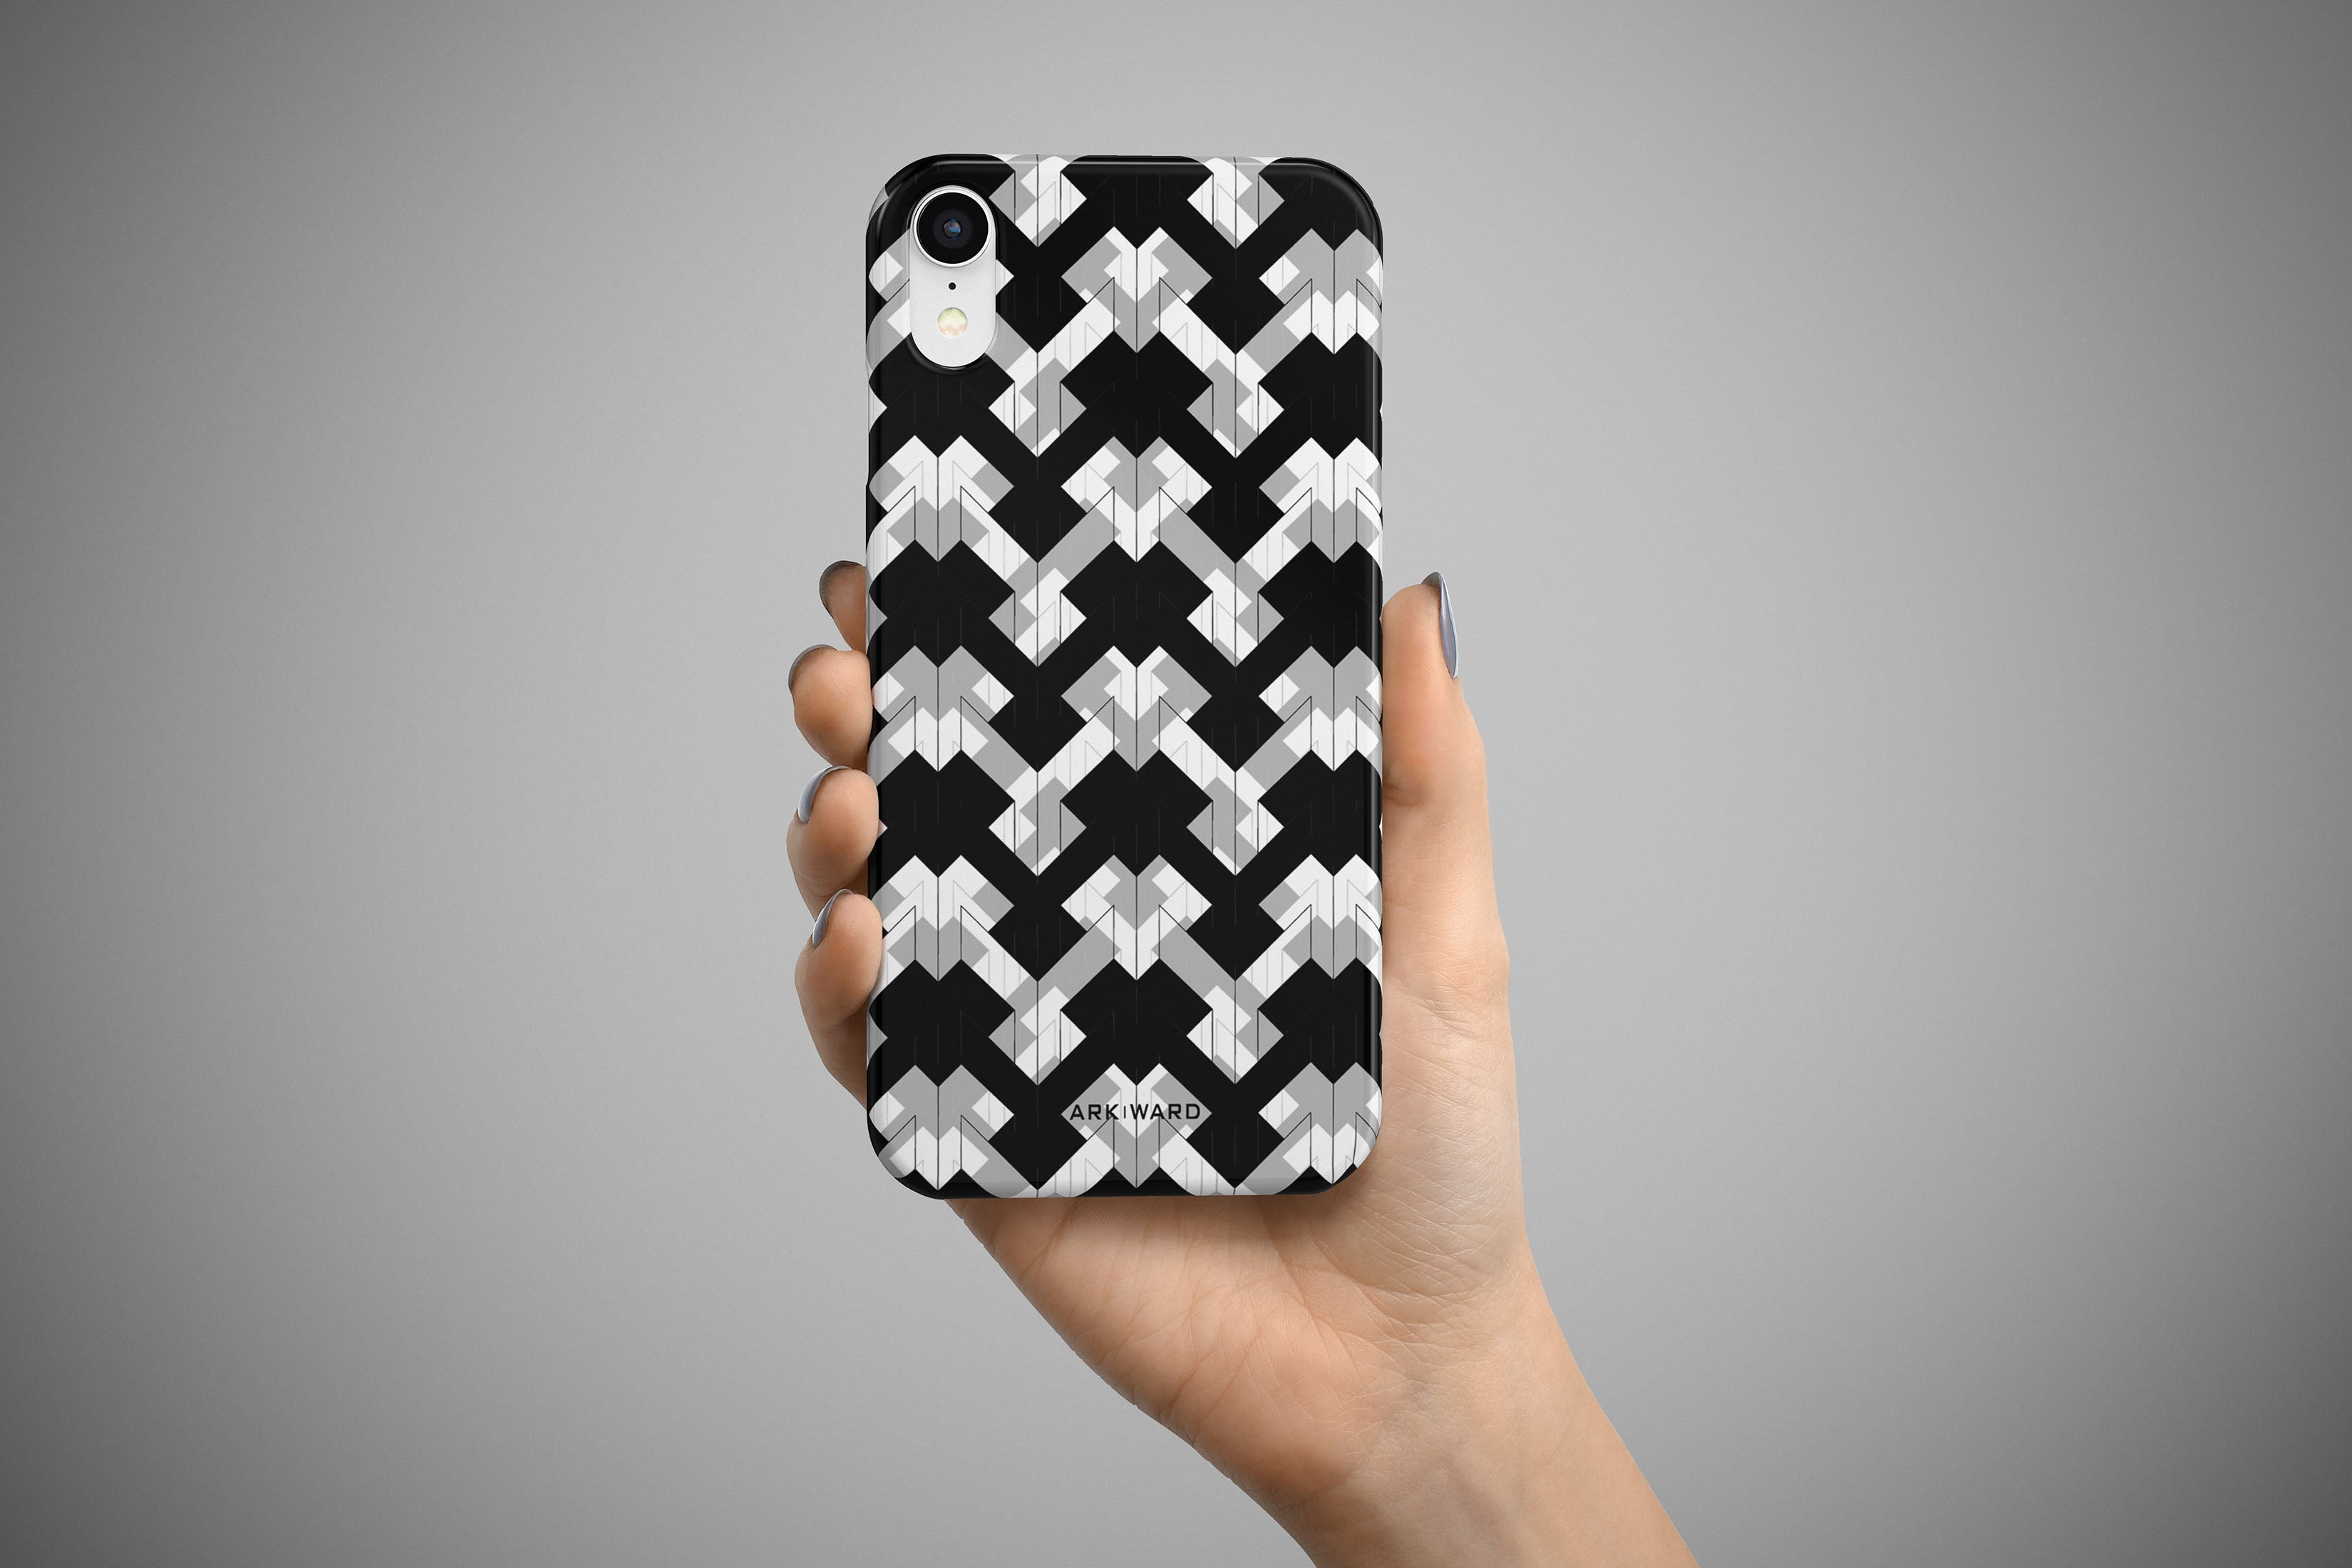 Arkward Flipped I iPhone Case